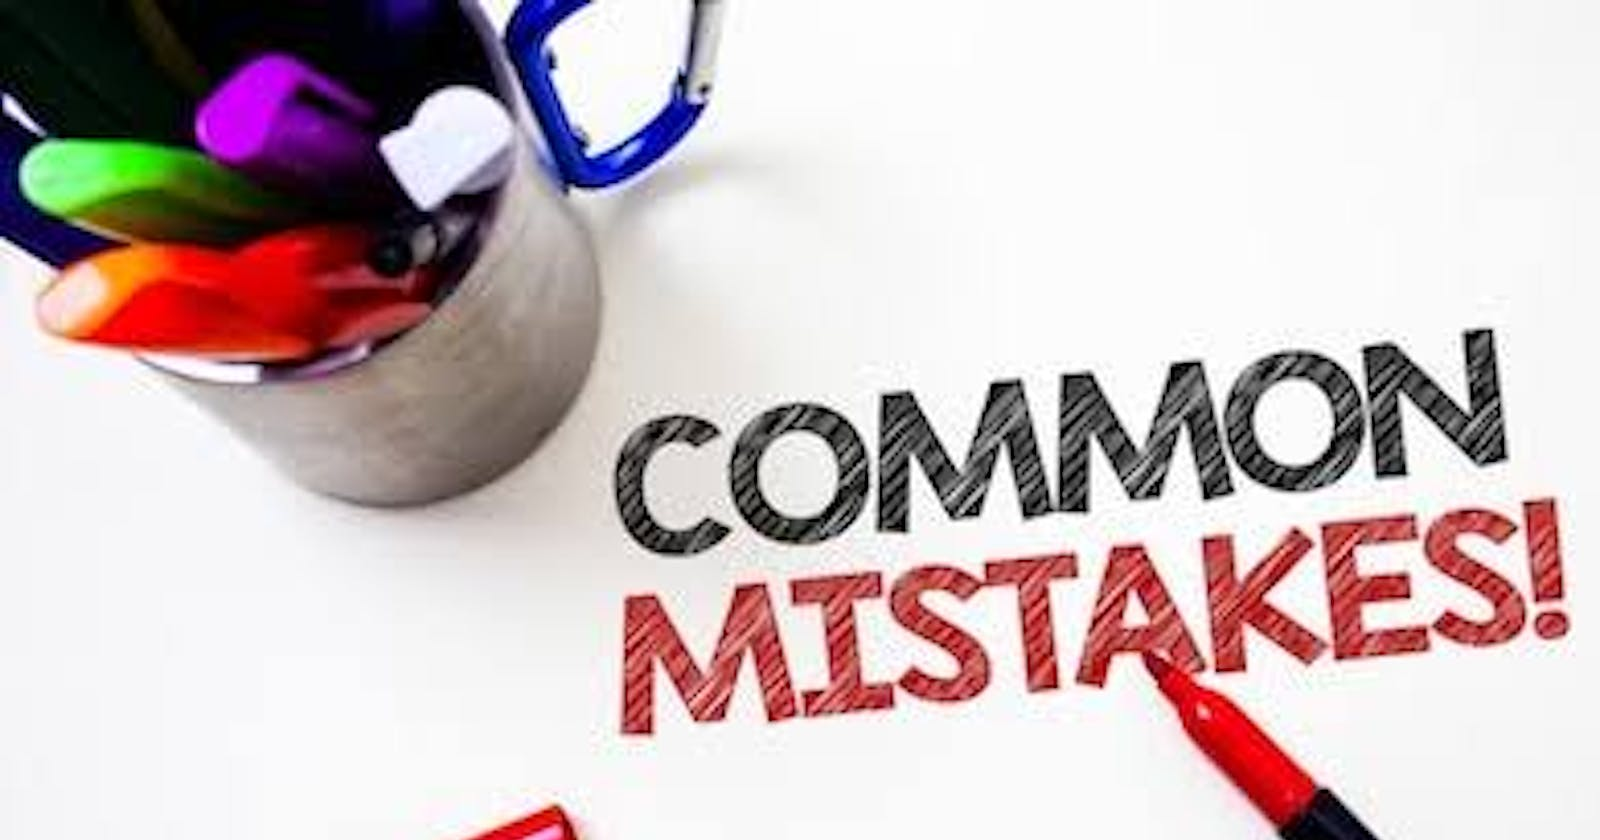 Some Very Common Mistakes to avoid when coding.